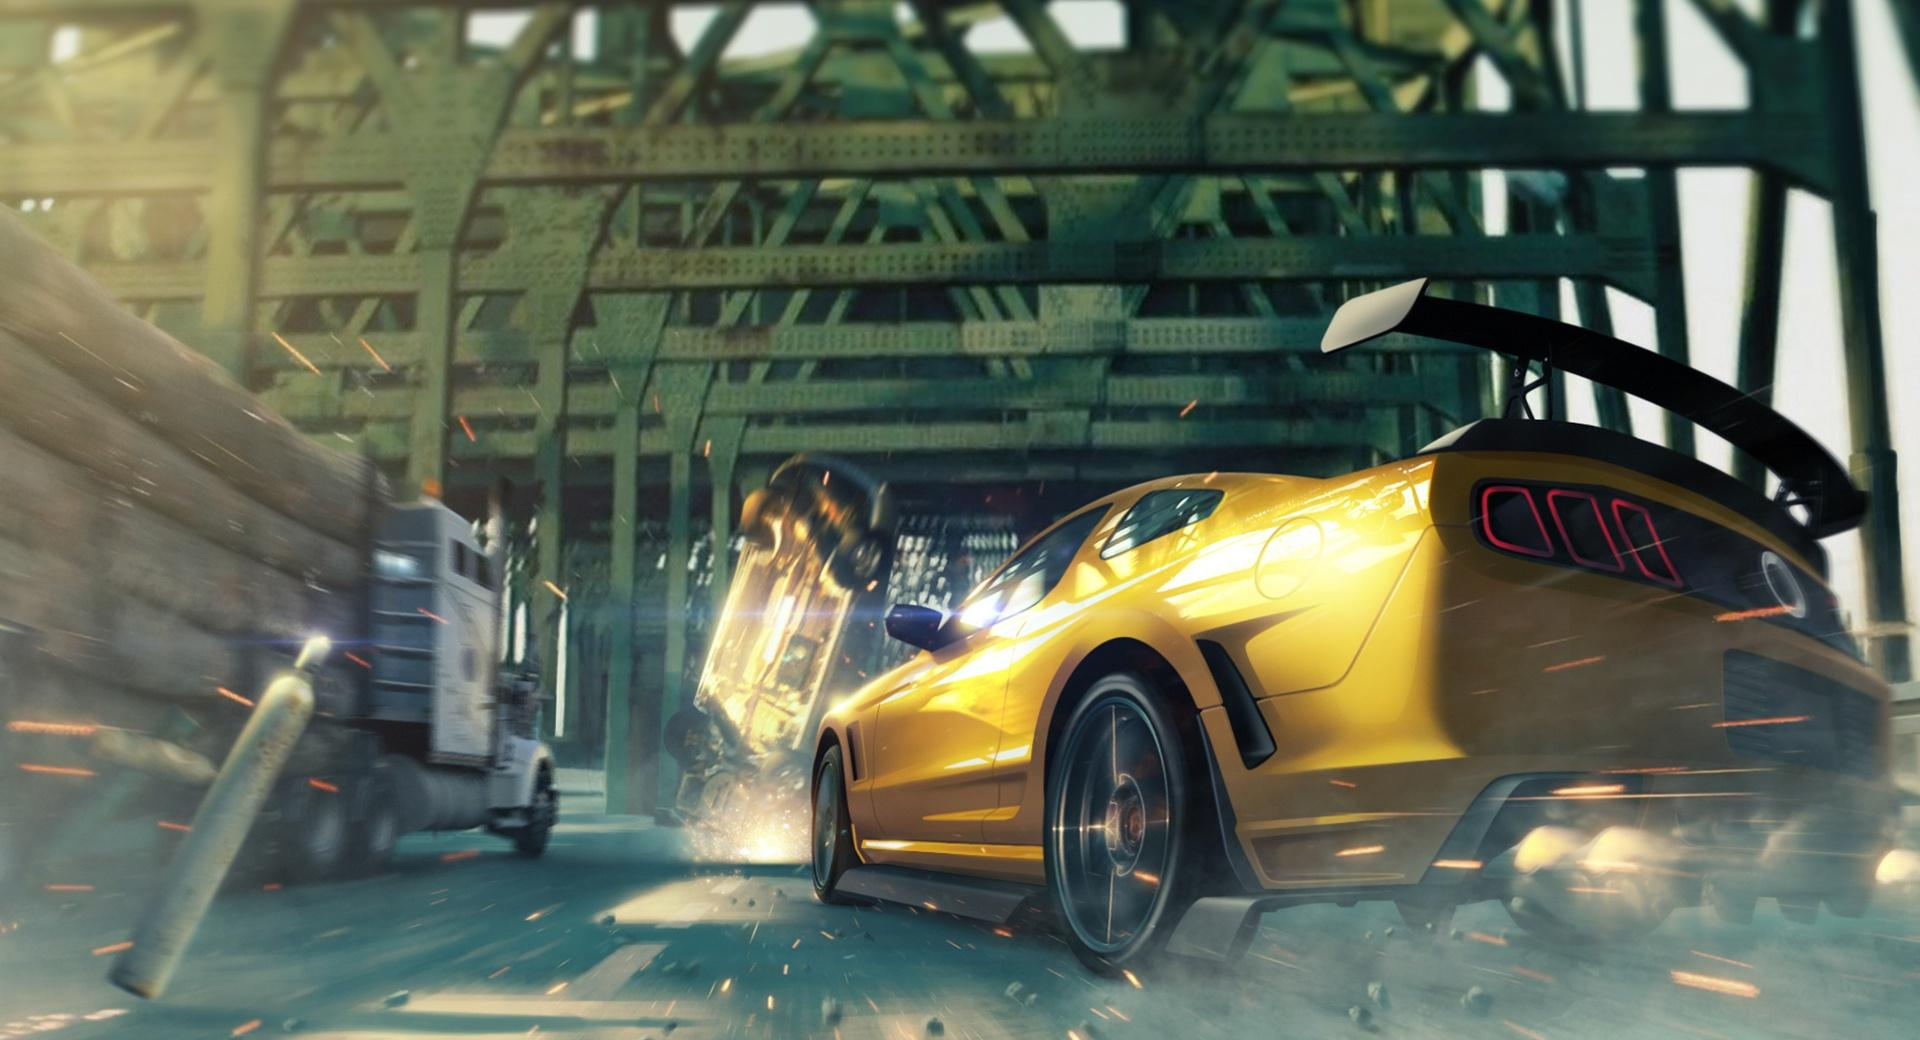 Need for Speed Most Wanted 2012 wallpapers HD quality